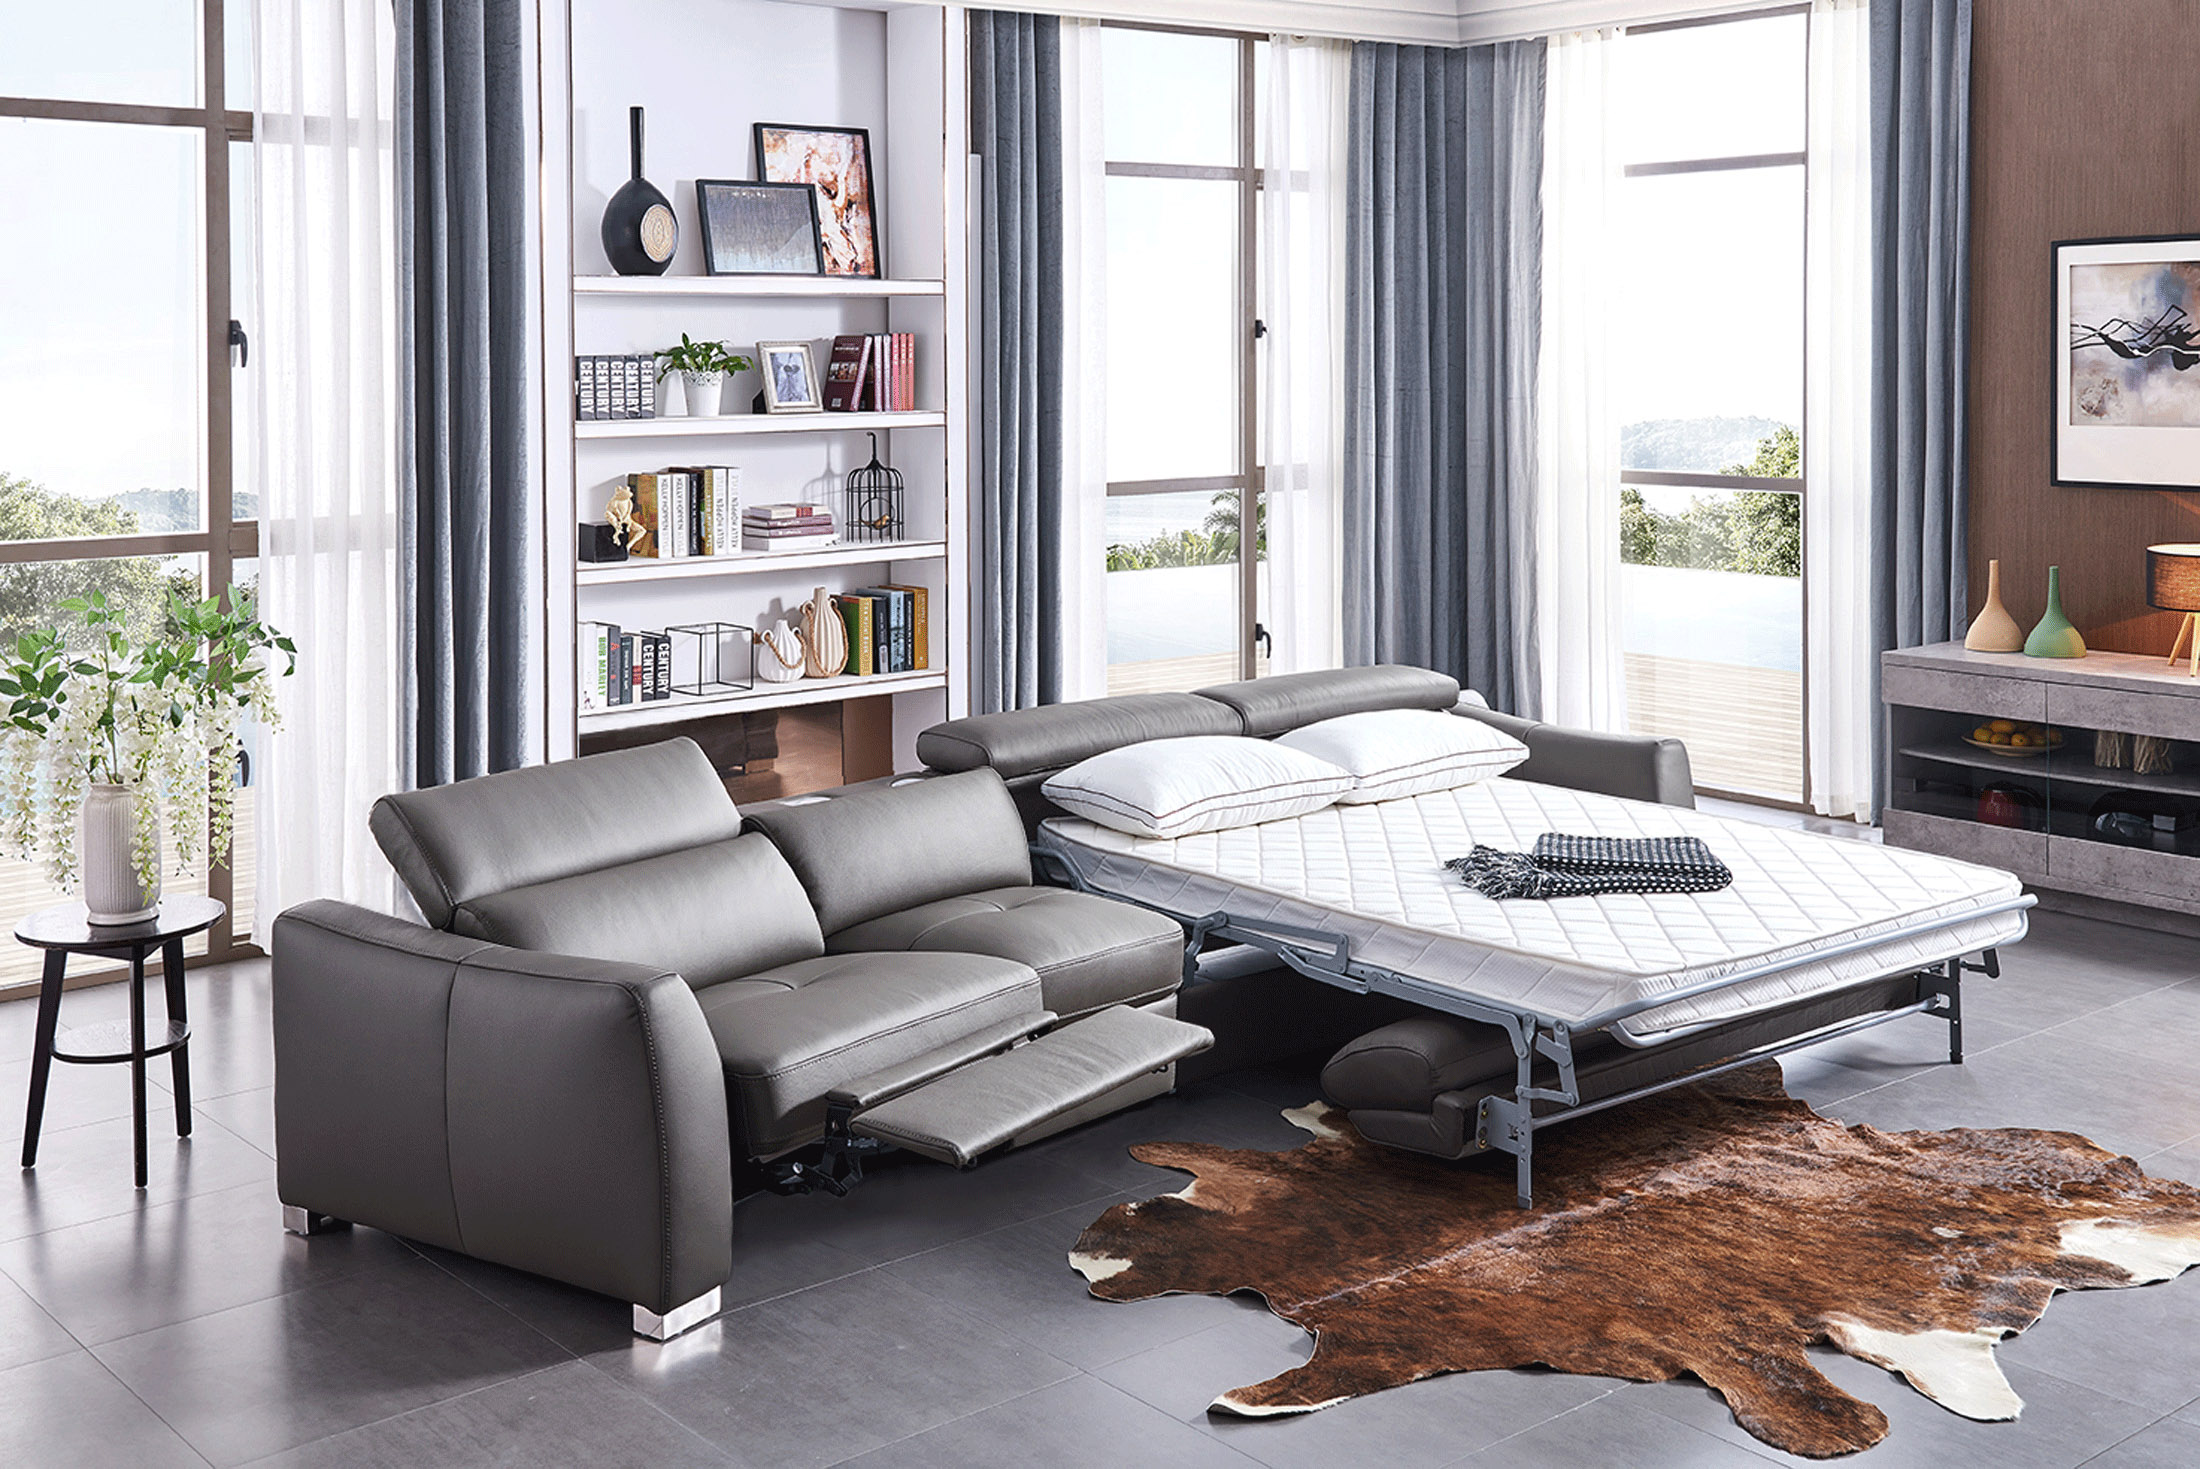 Sofa Sectionals With Bed Leather Sectional With Pull Out Sleeper Bed